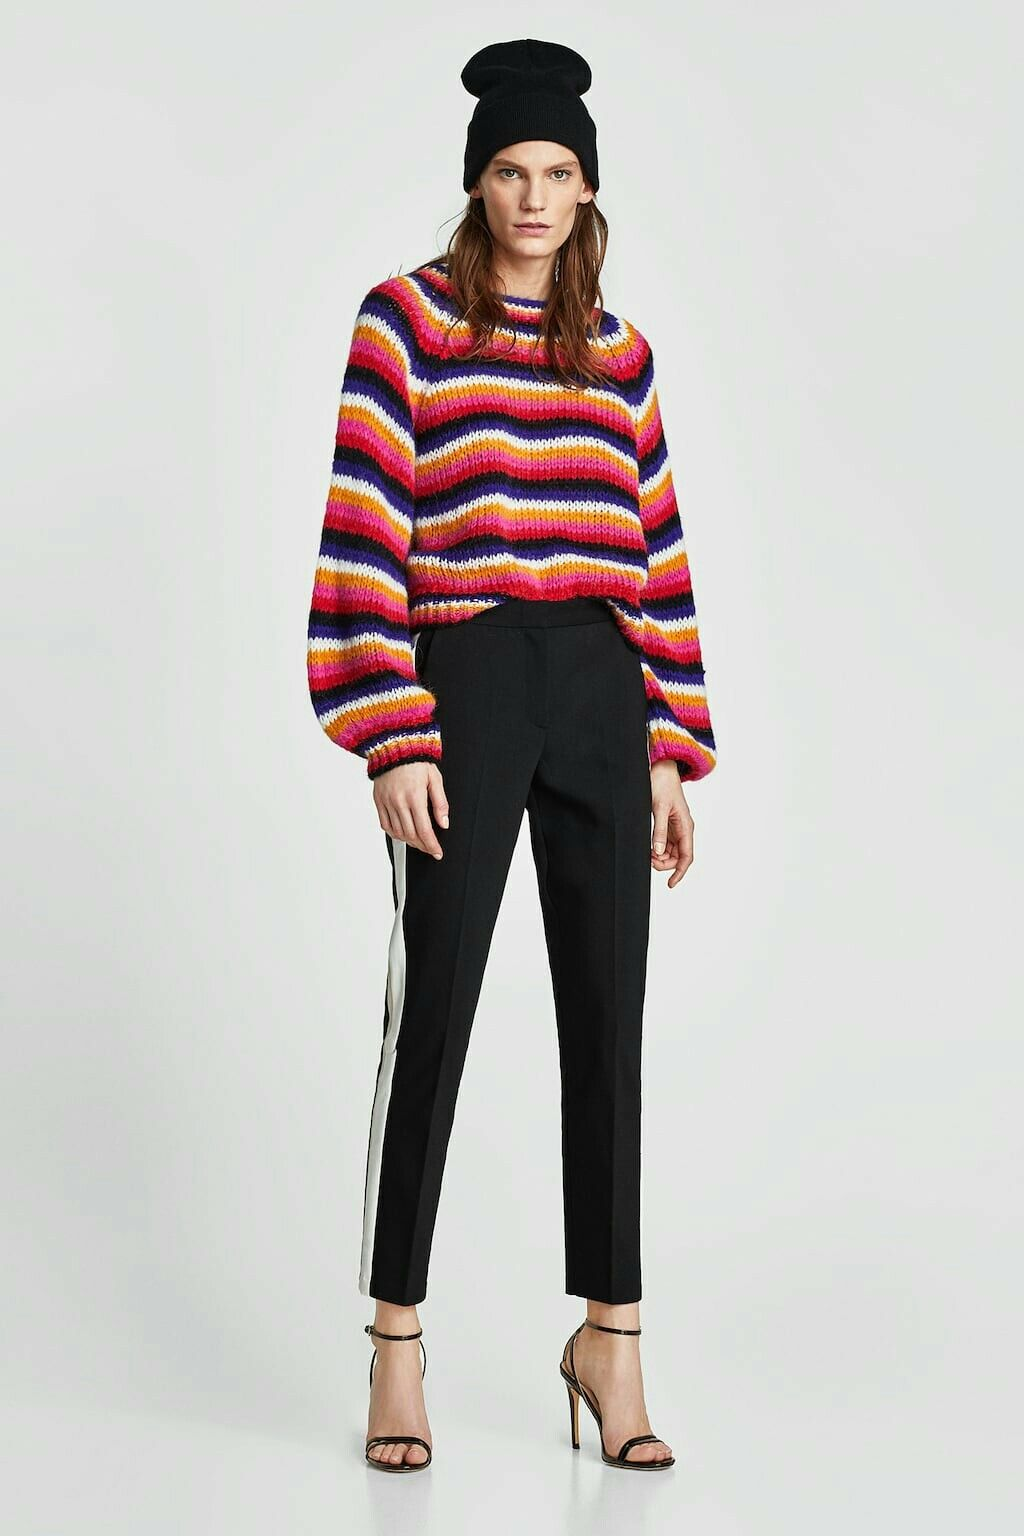 Zara multi colour striped wool blend jumper with puff sleeves size M